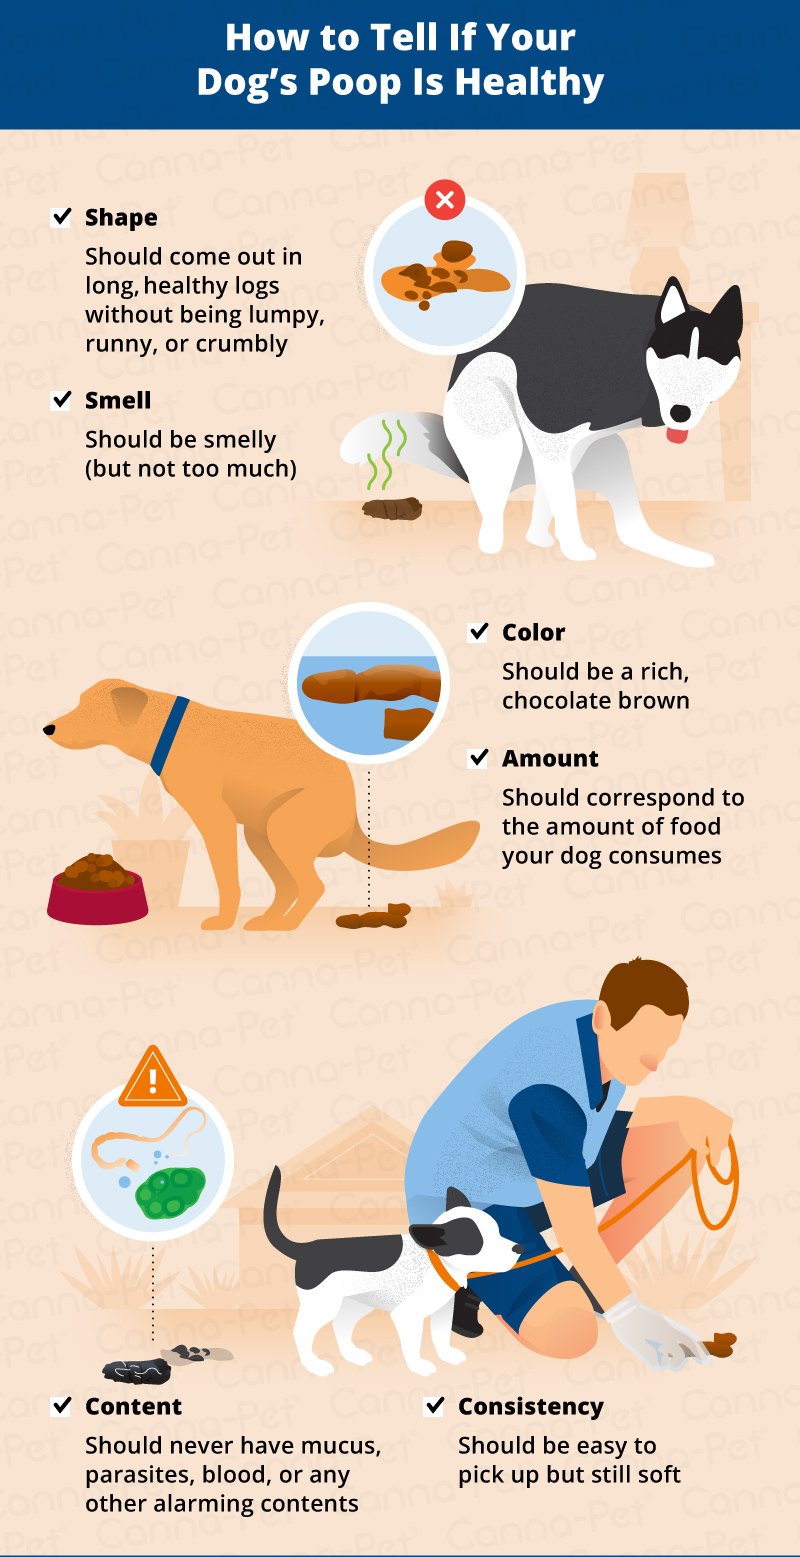 how to tell if your dogs poop is healthy_canna-pet